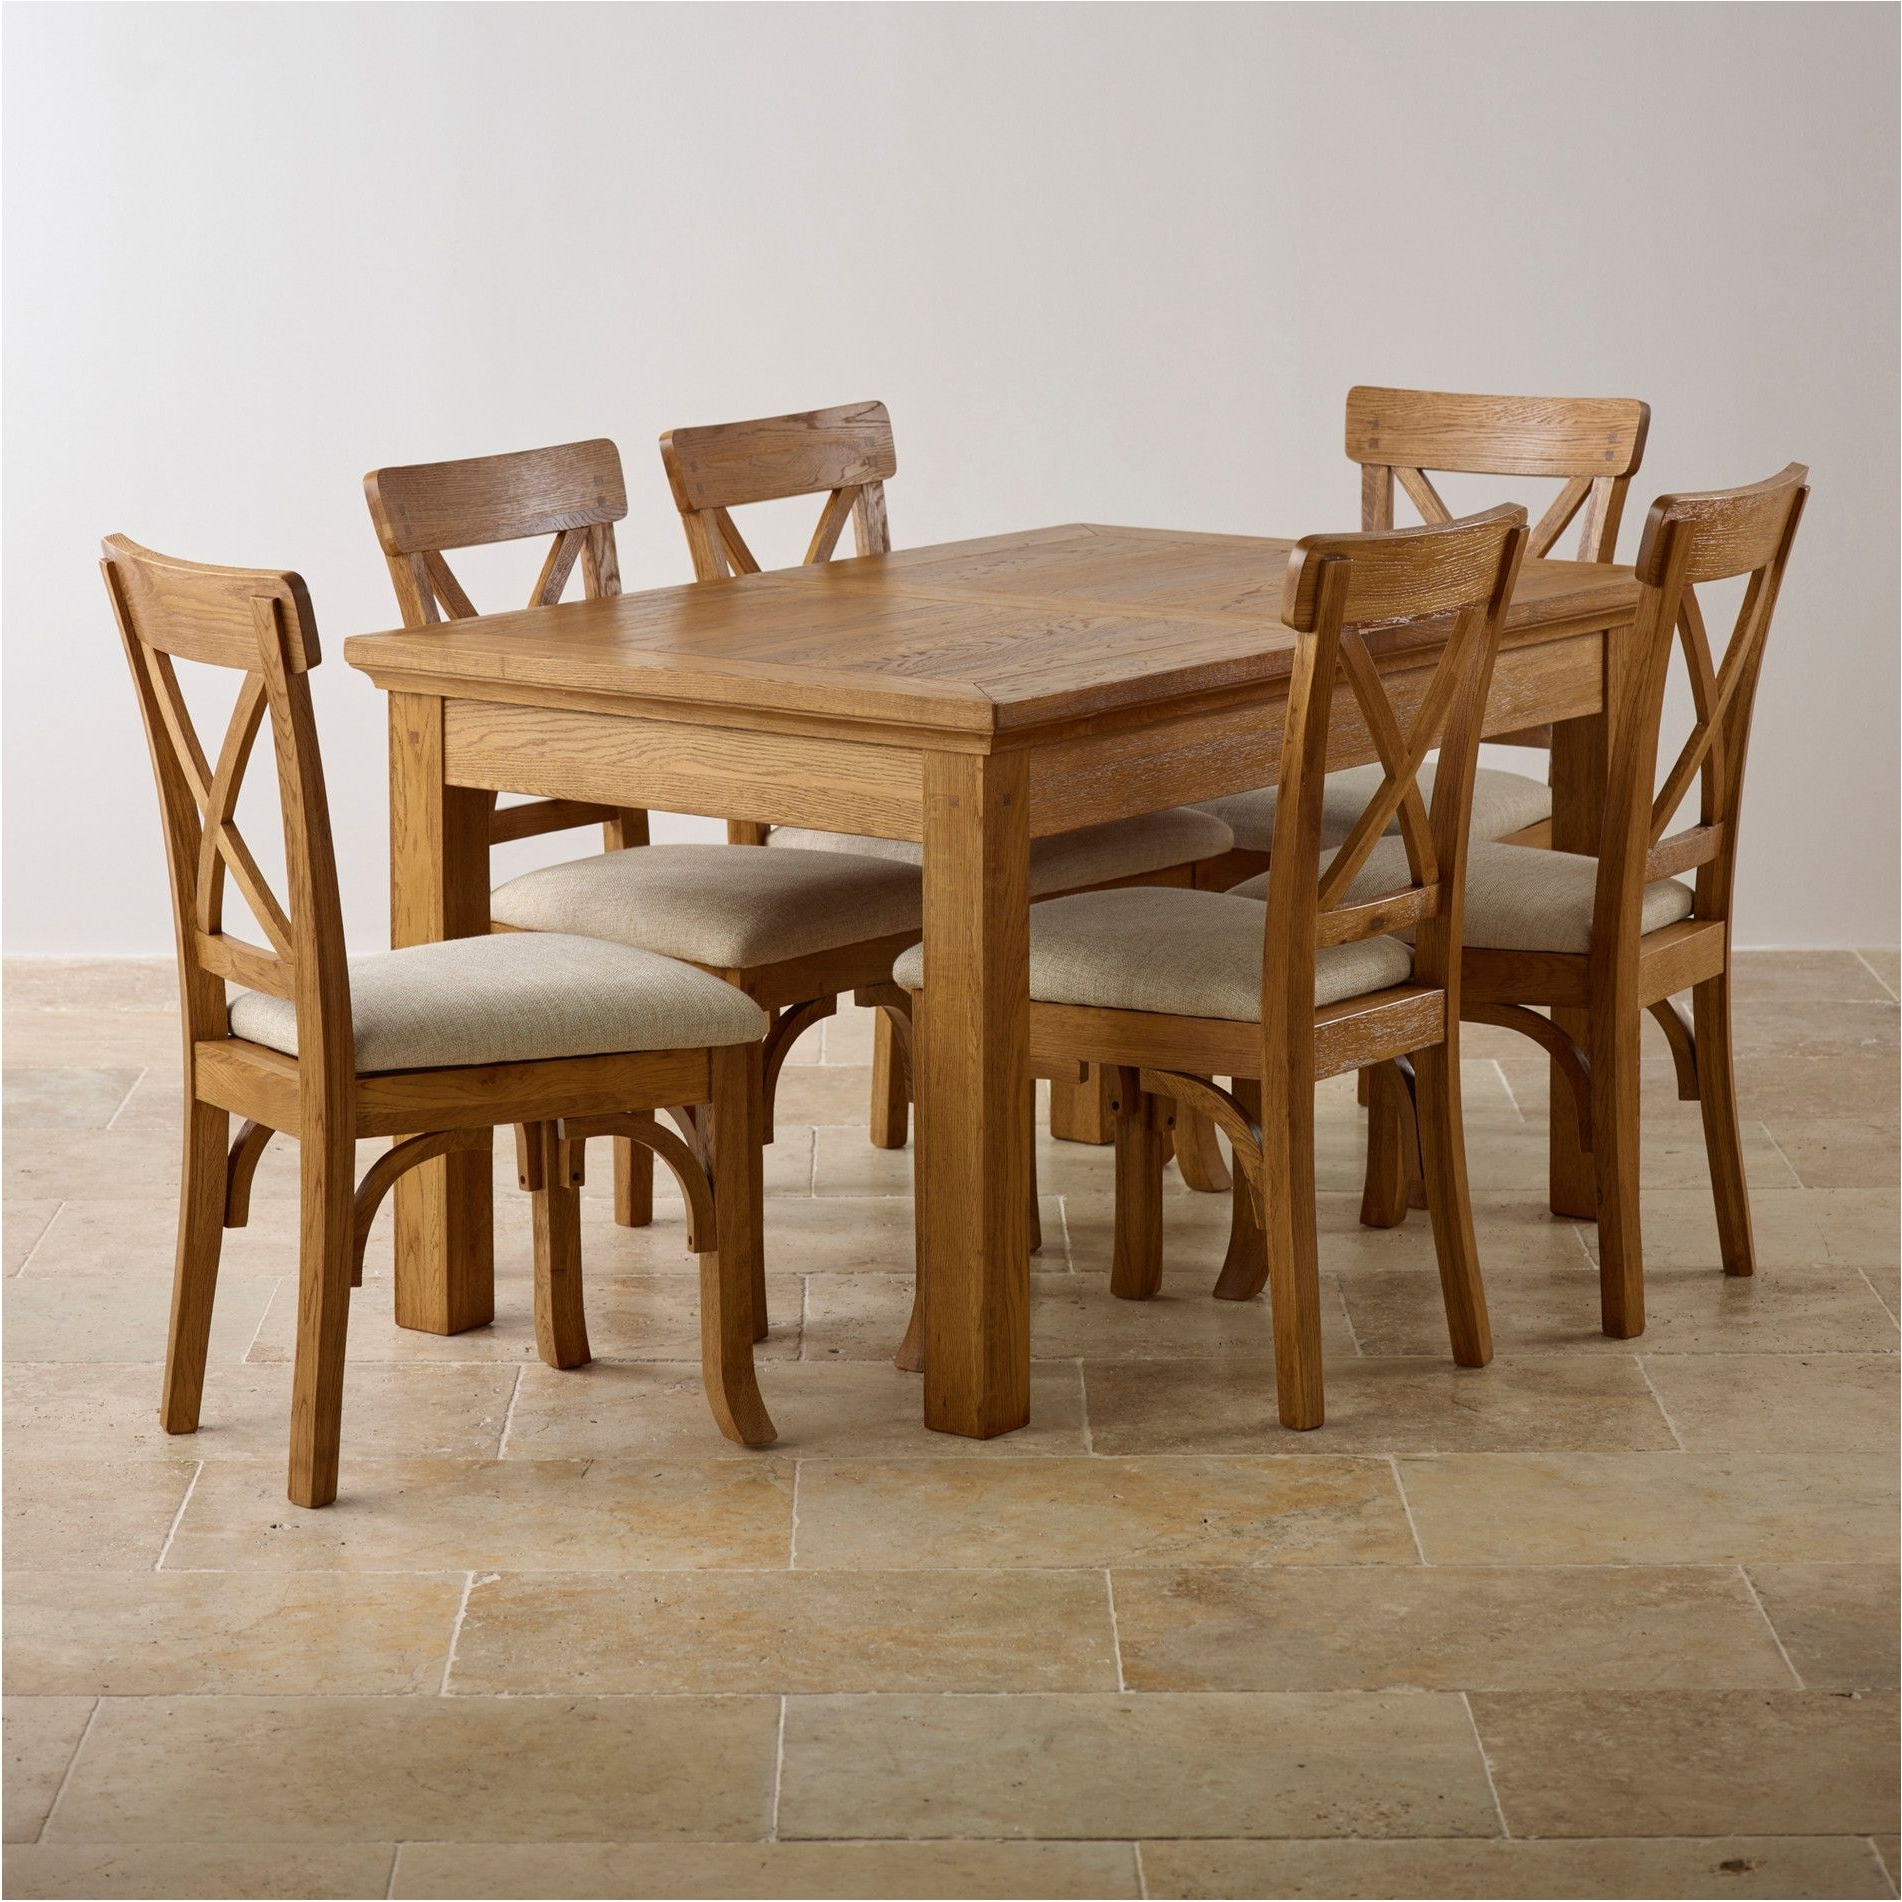 Light Oak Dining Tables And 6 Chairs Within 2018 Nice Excellent Oak Dining Table Set 6 Room And Chairs Be Black (View 14 of 25)